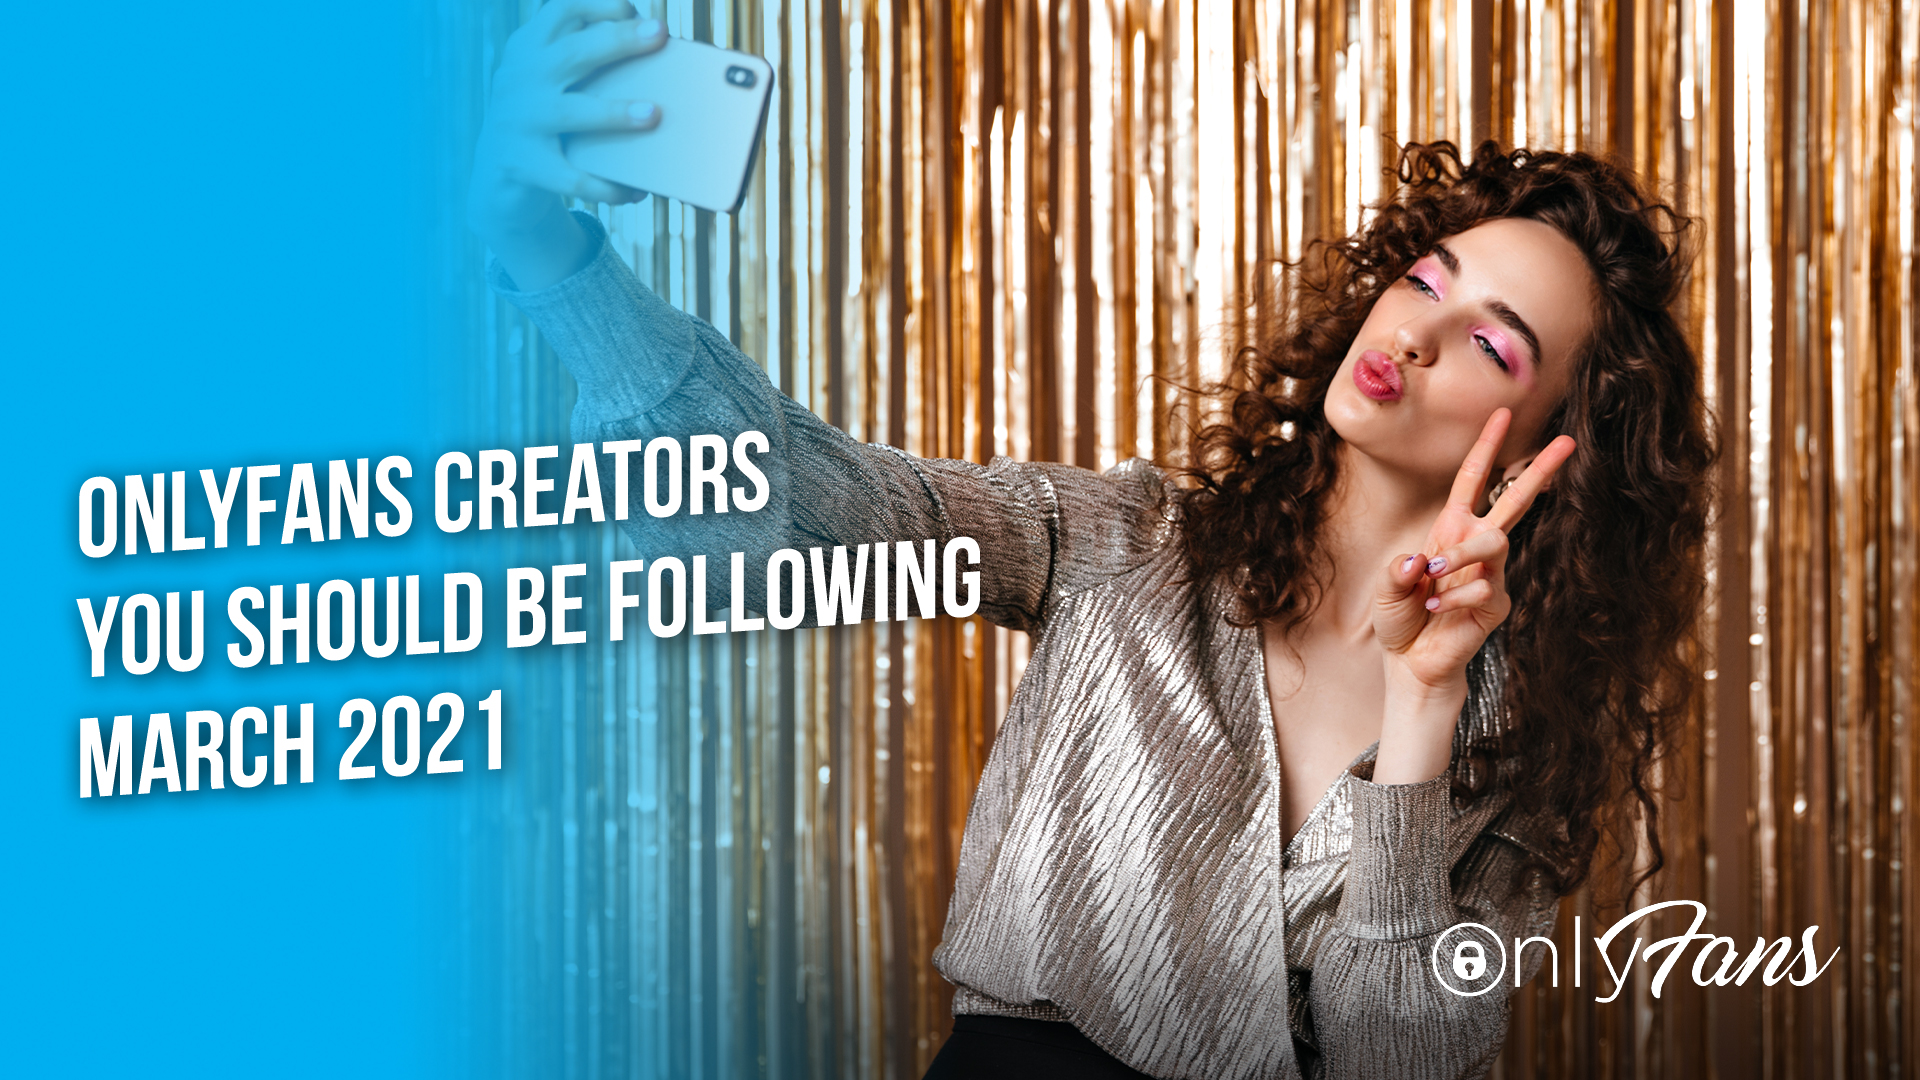 OnlyFans Creators You Should Be Following March 2021